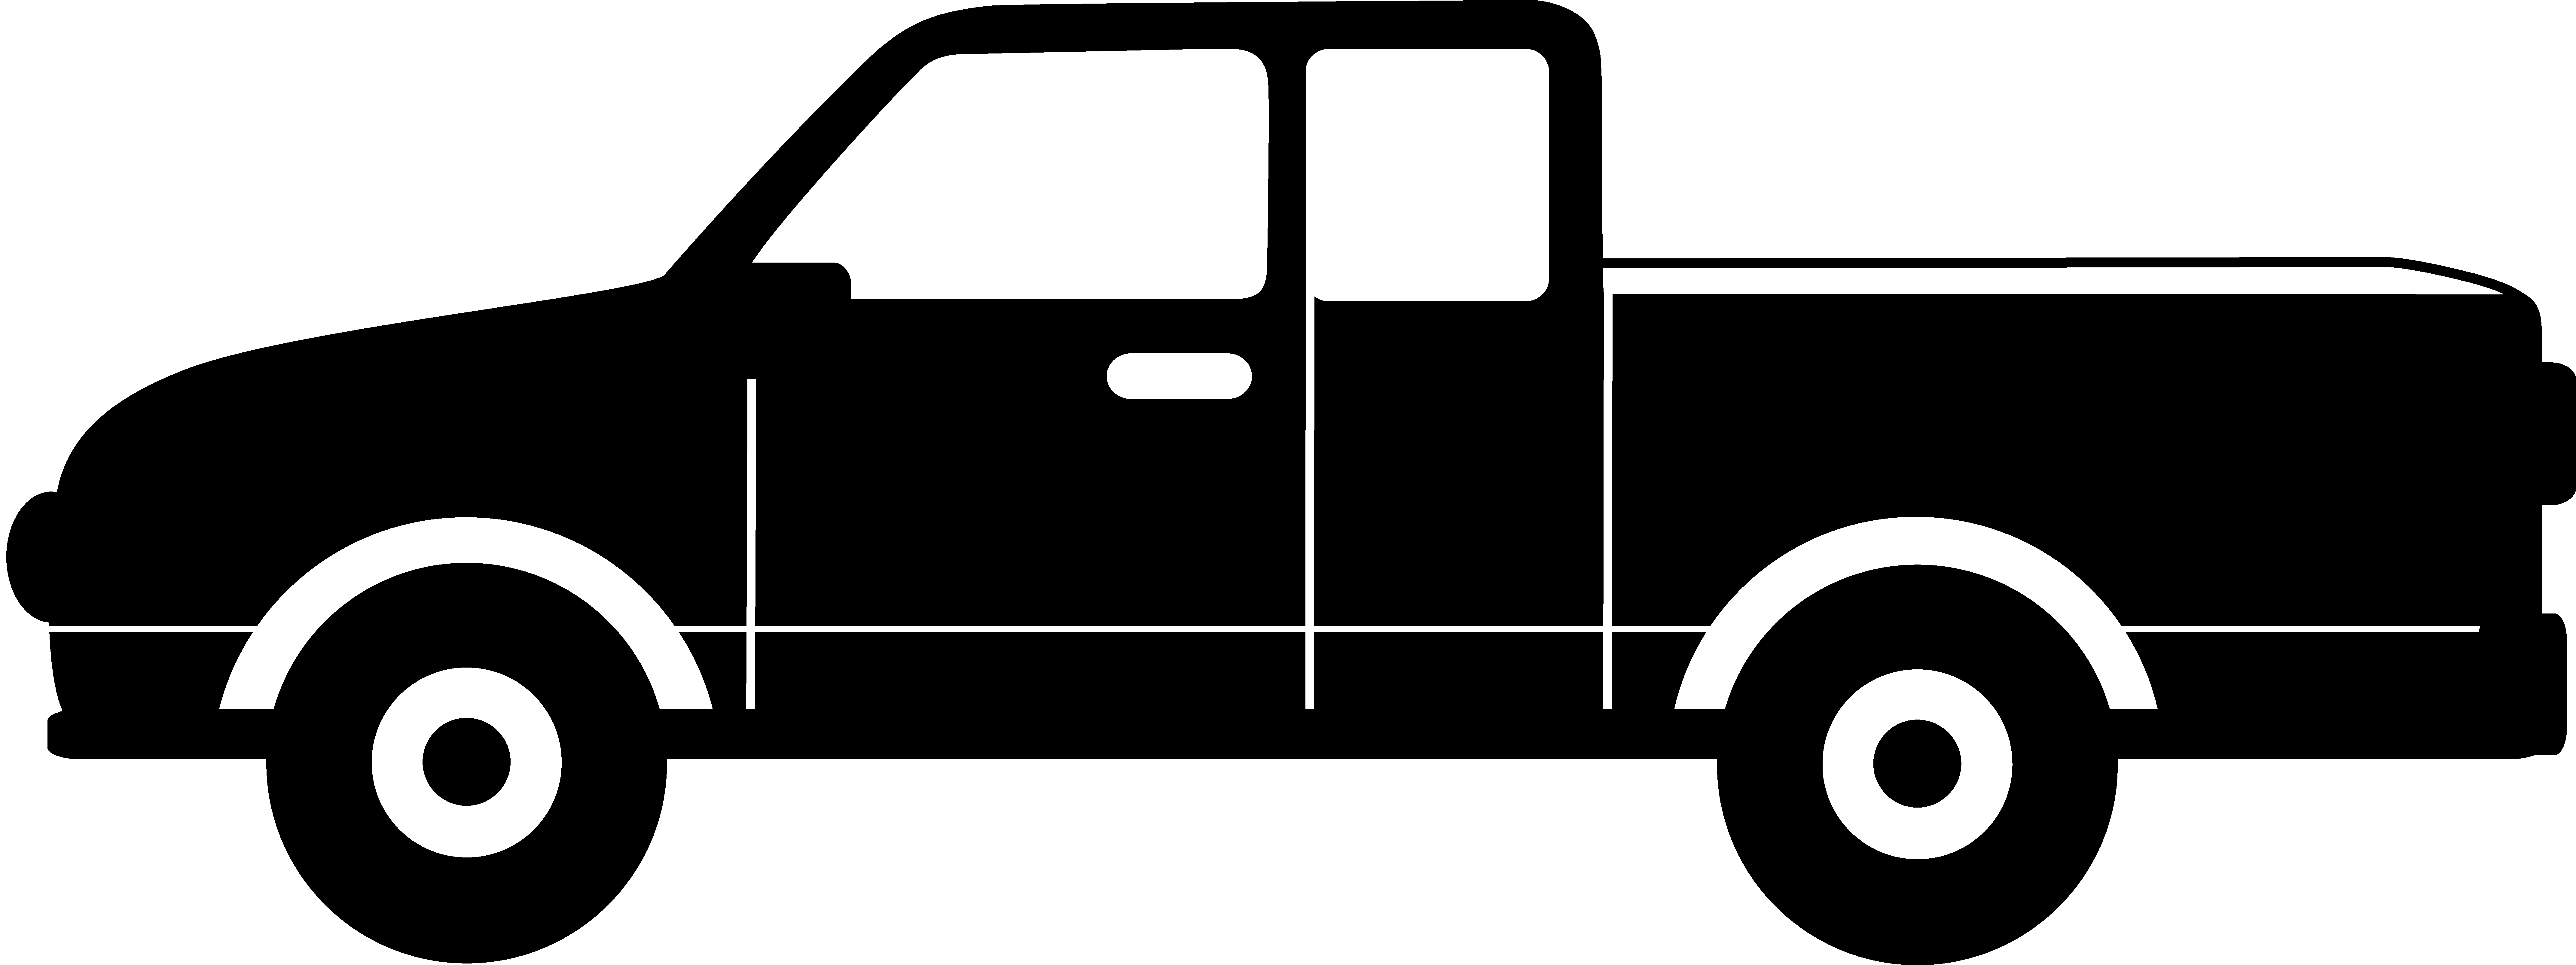 Toyota pickup truck clipart .